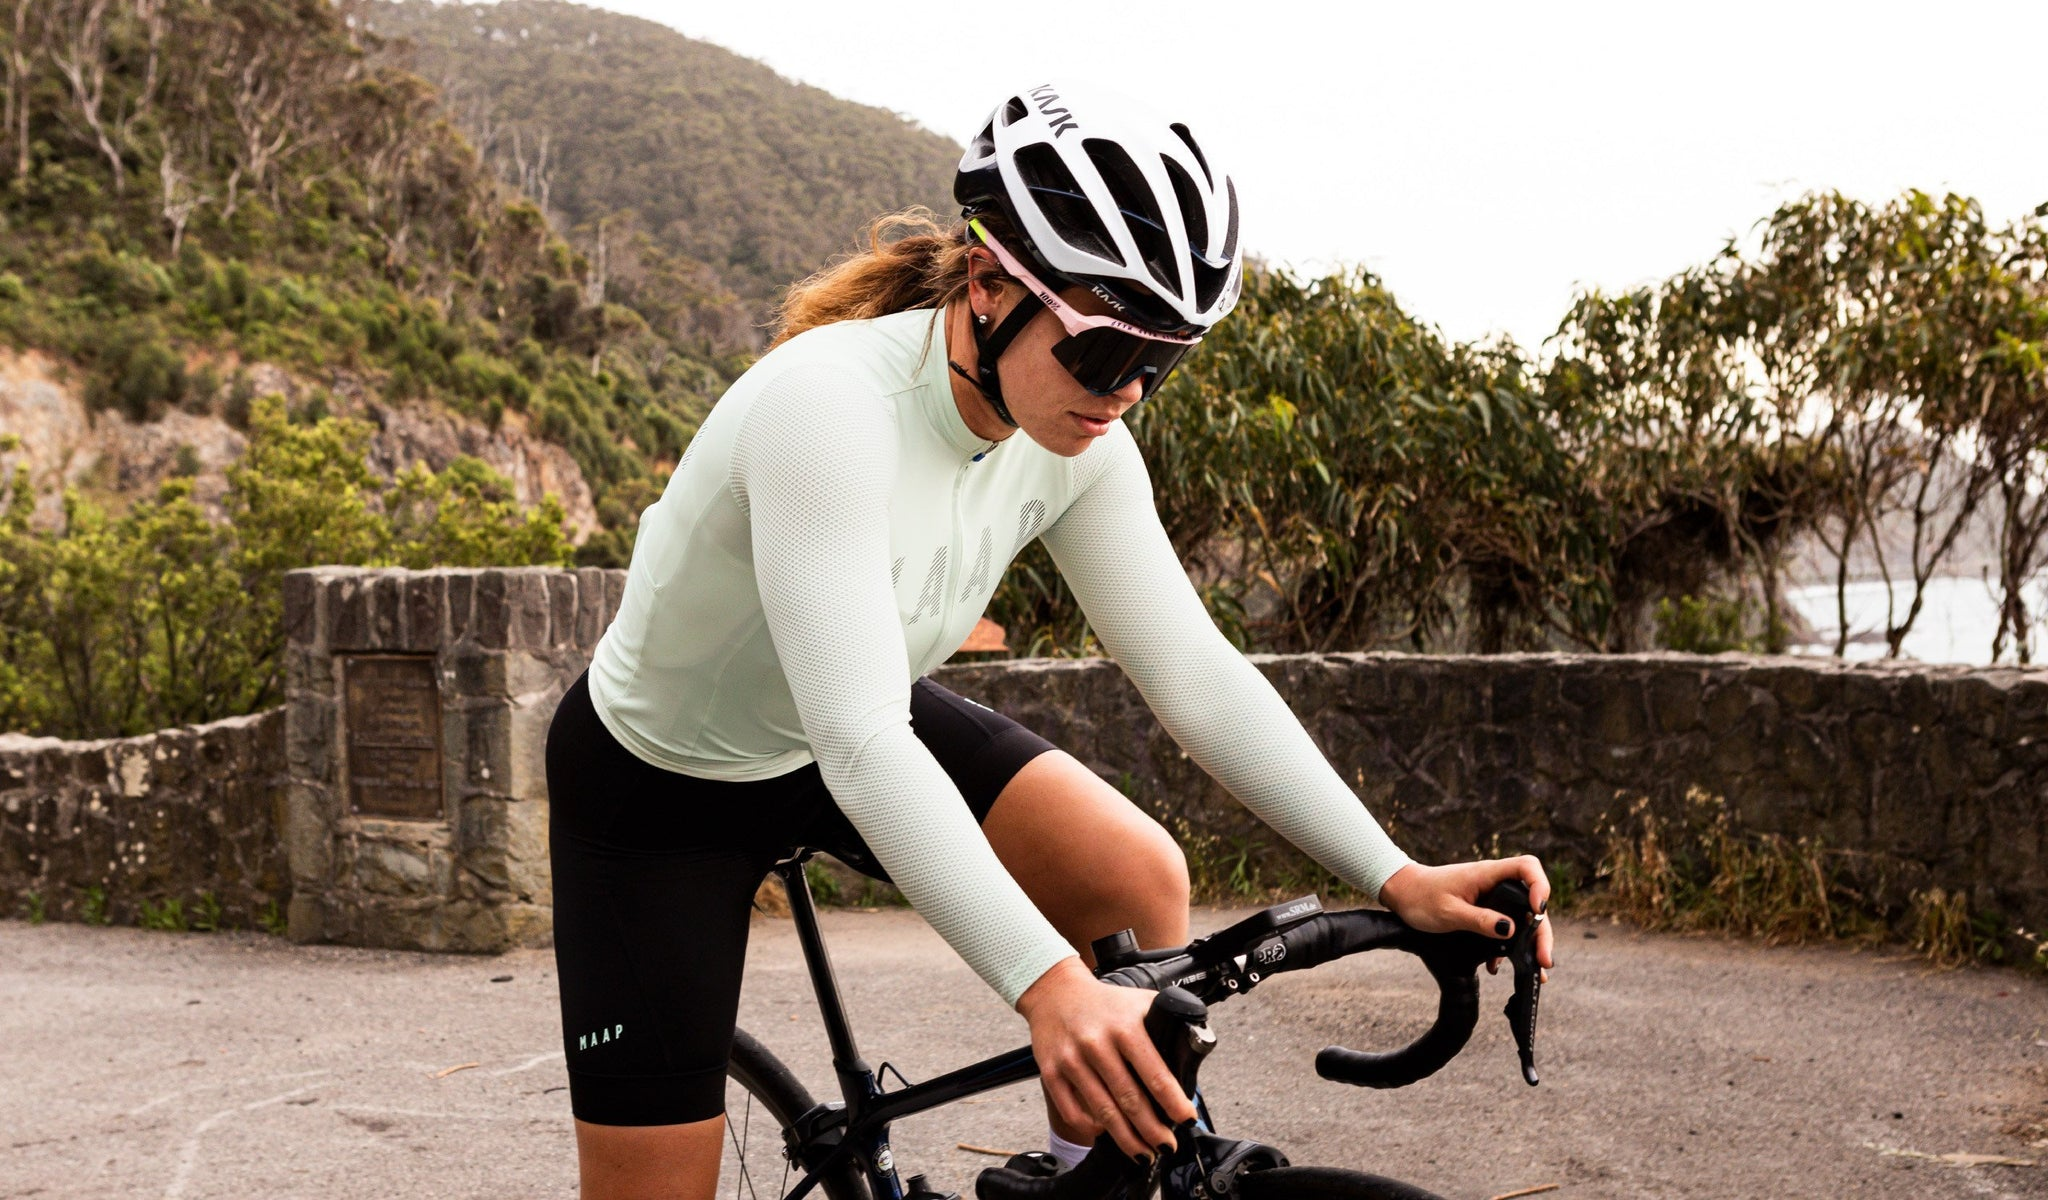 MAAP Women's Echo Pro Base Long Sleeve Cycling Jersey in Spearmint for riding in mild weather conditions.